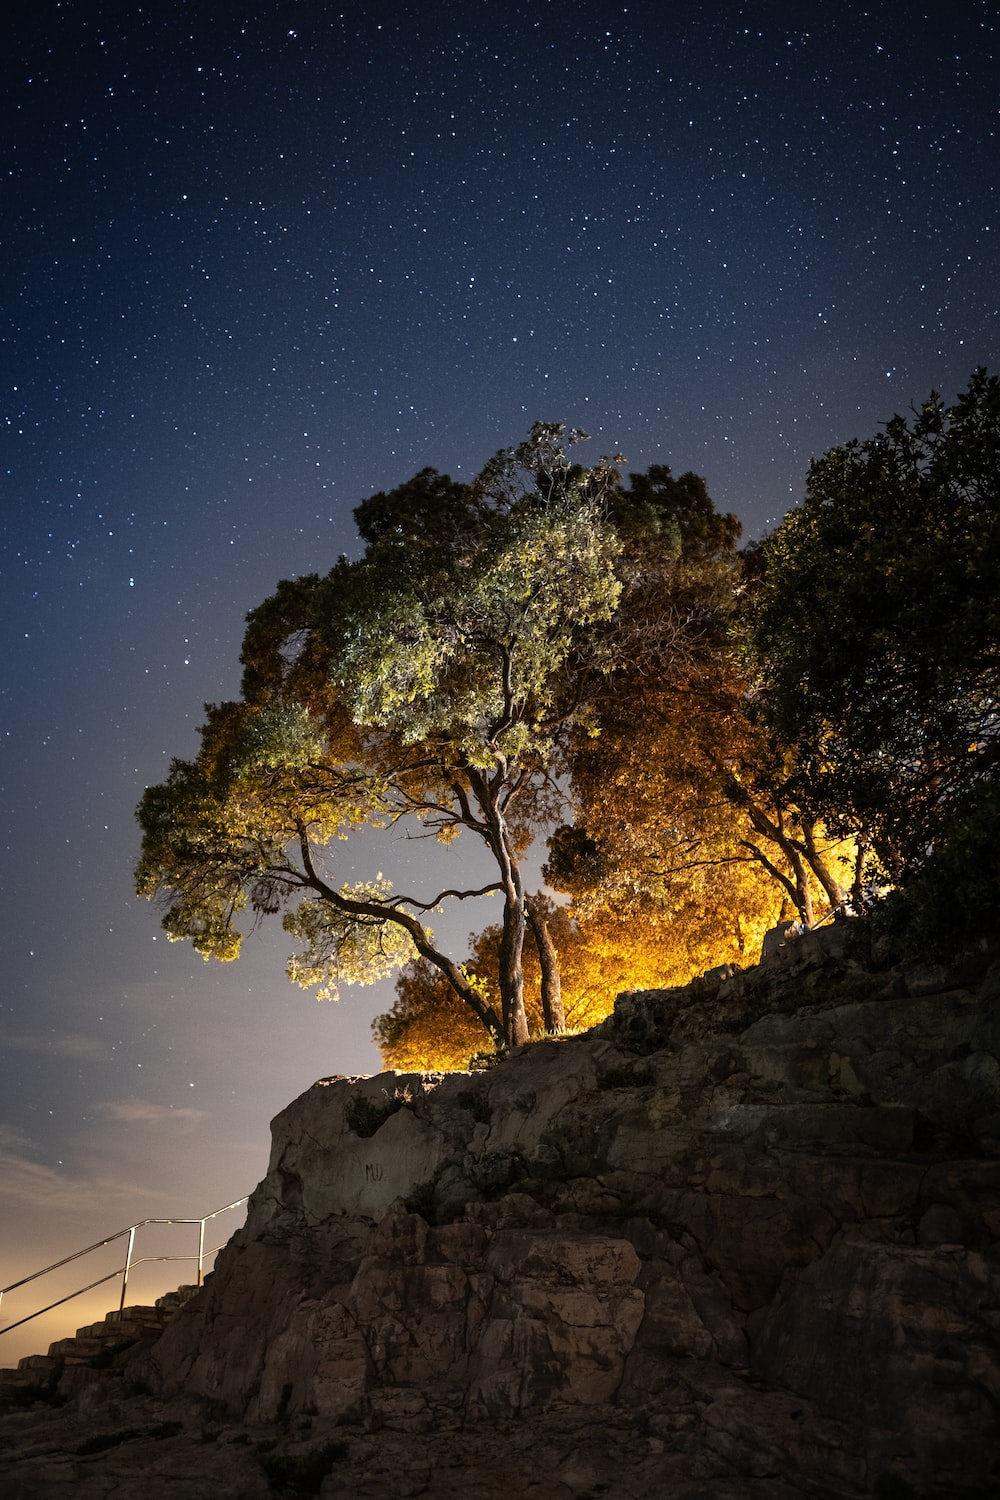 green trees on brown rocky mountain during night time